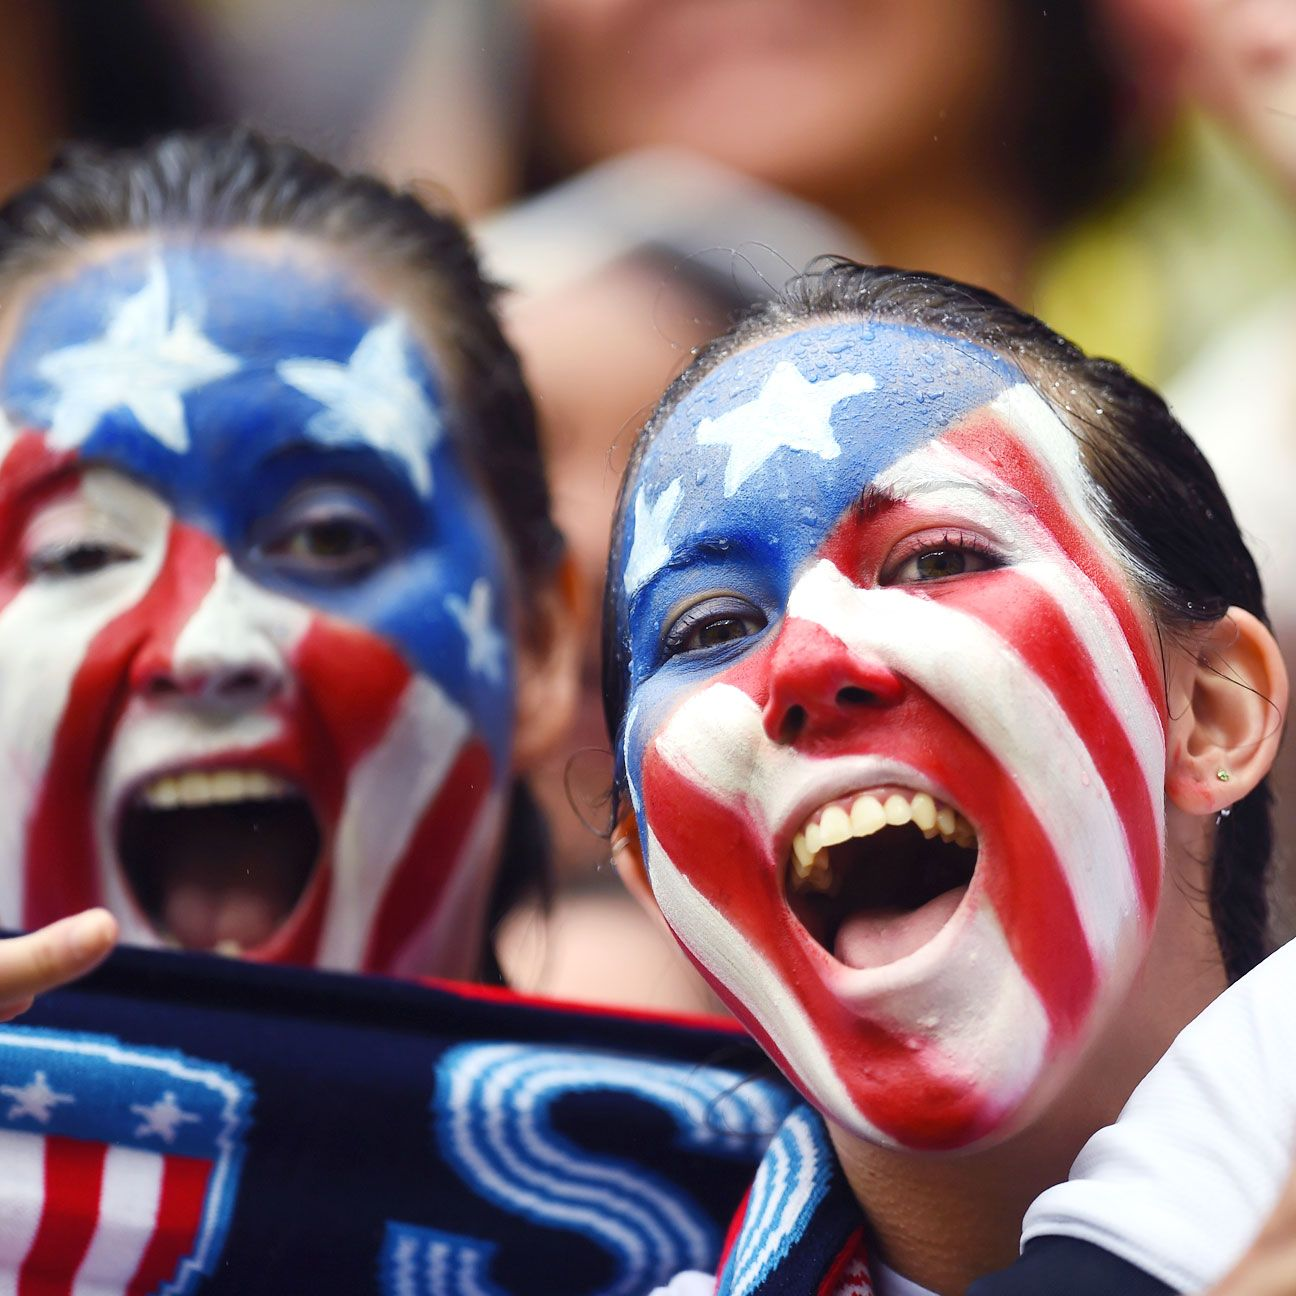 It's clear from both ticket sales and travelling support that the U.S. is a true footballing nation.